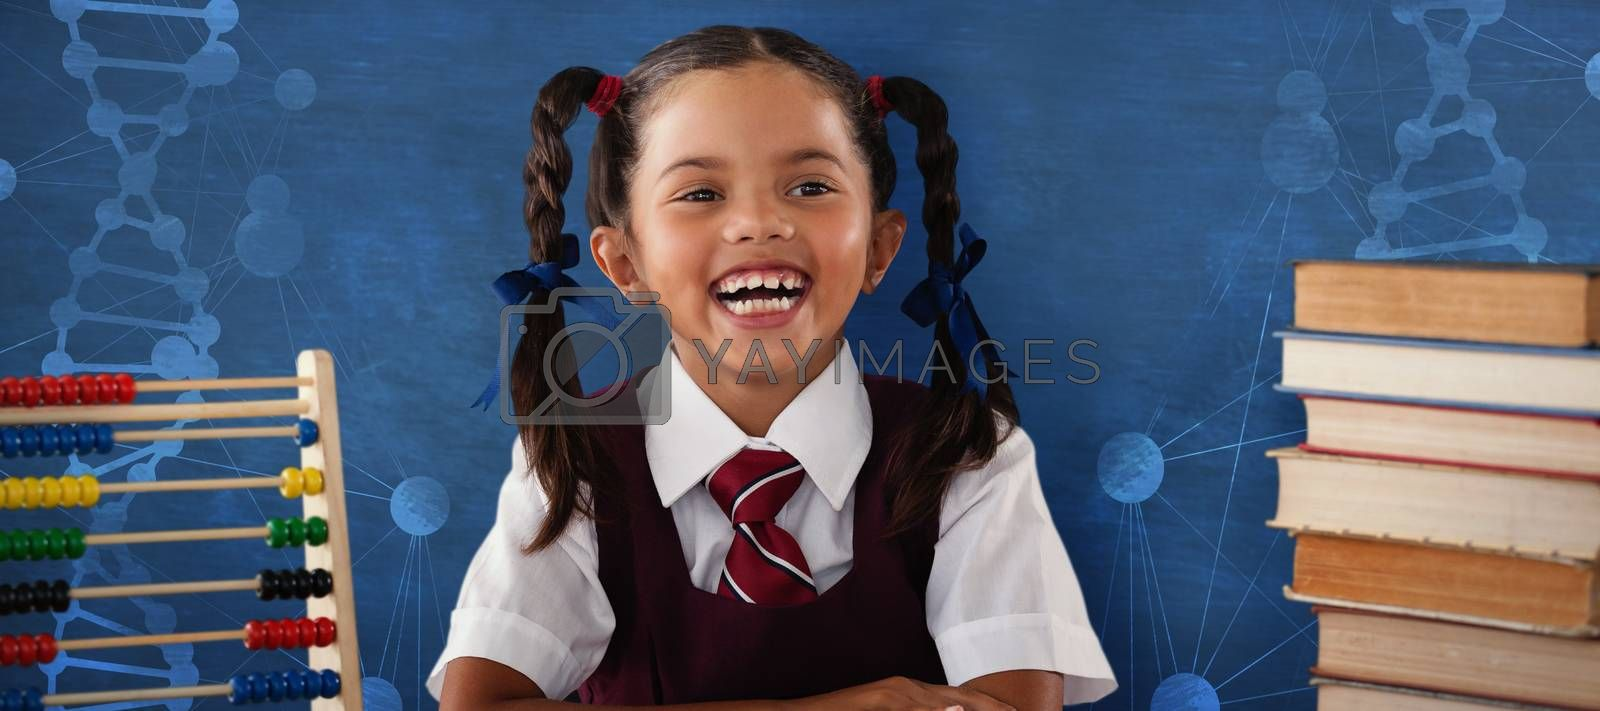 Composite image of cheerful schoolgirl with stack of books  by Wavebreakmedia